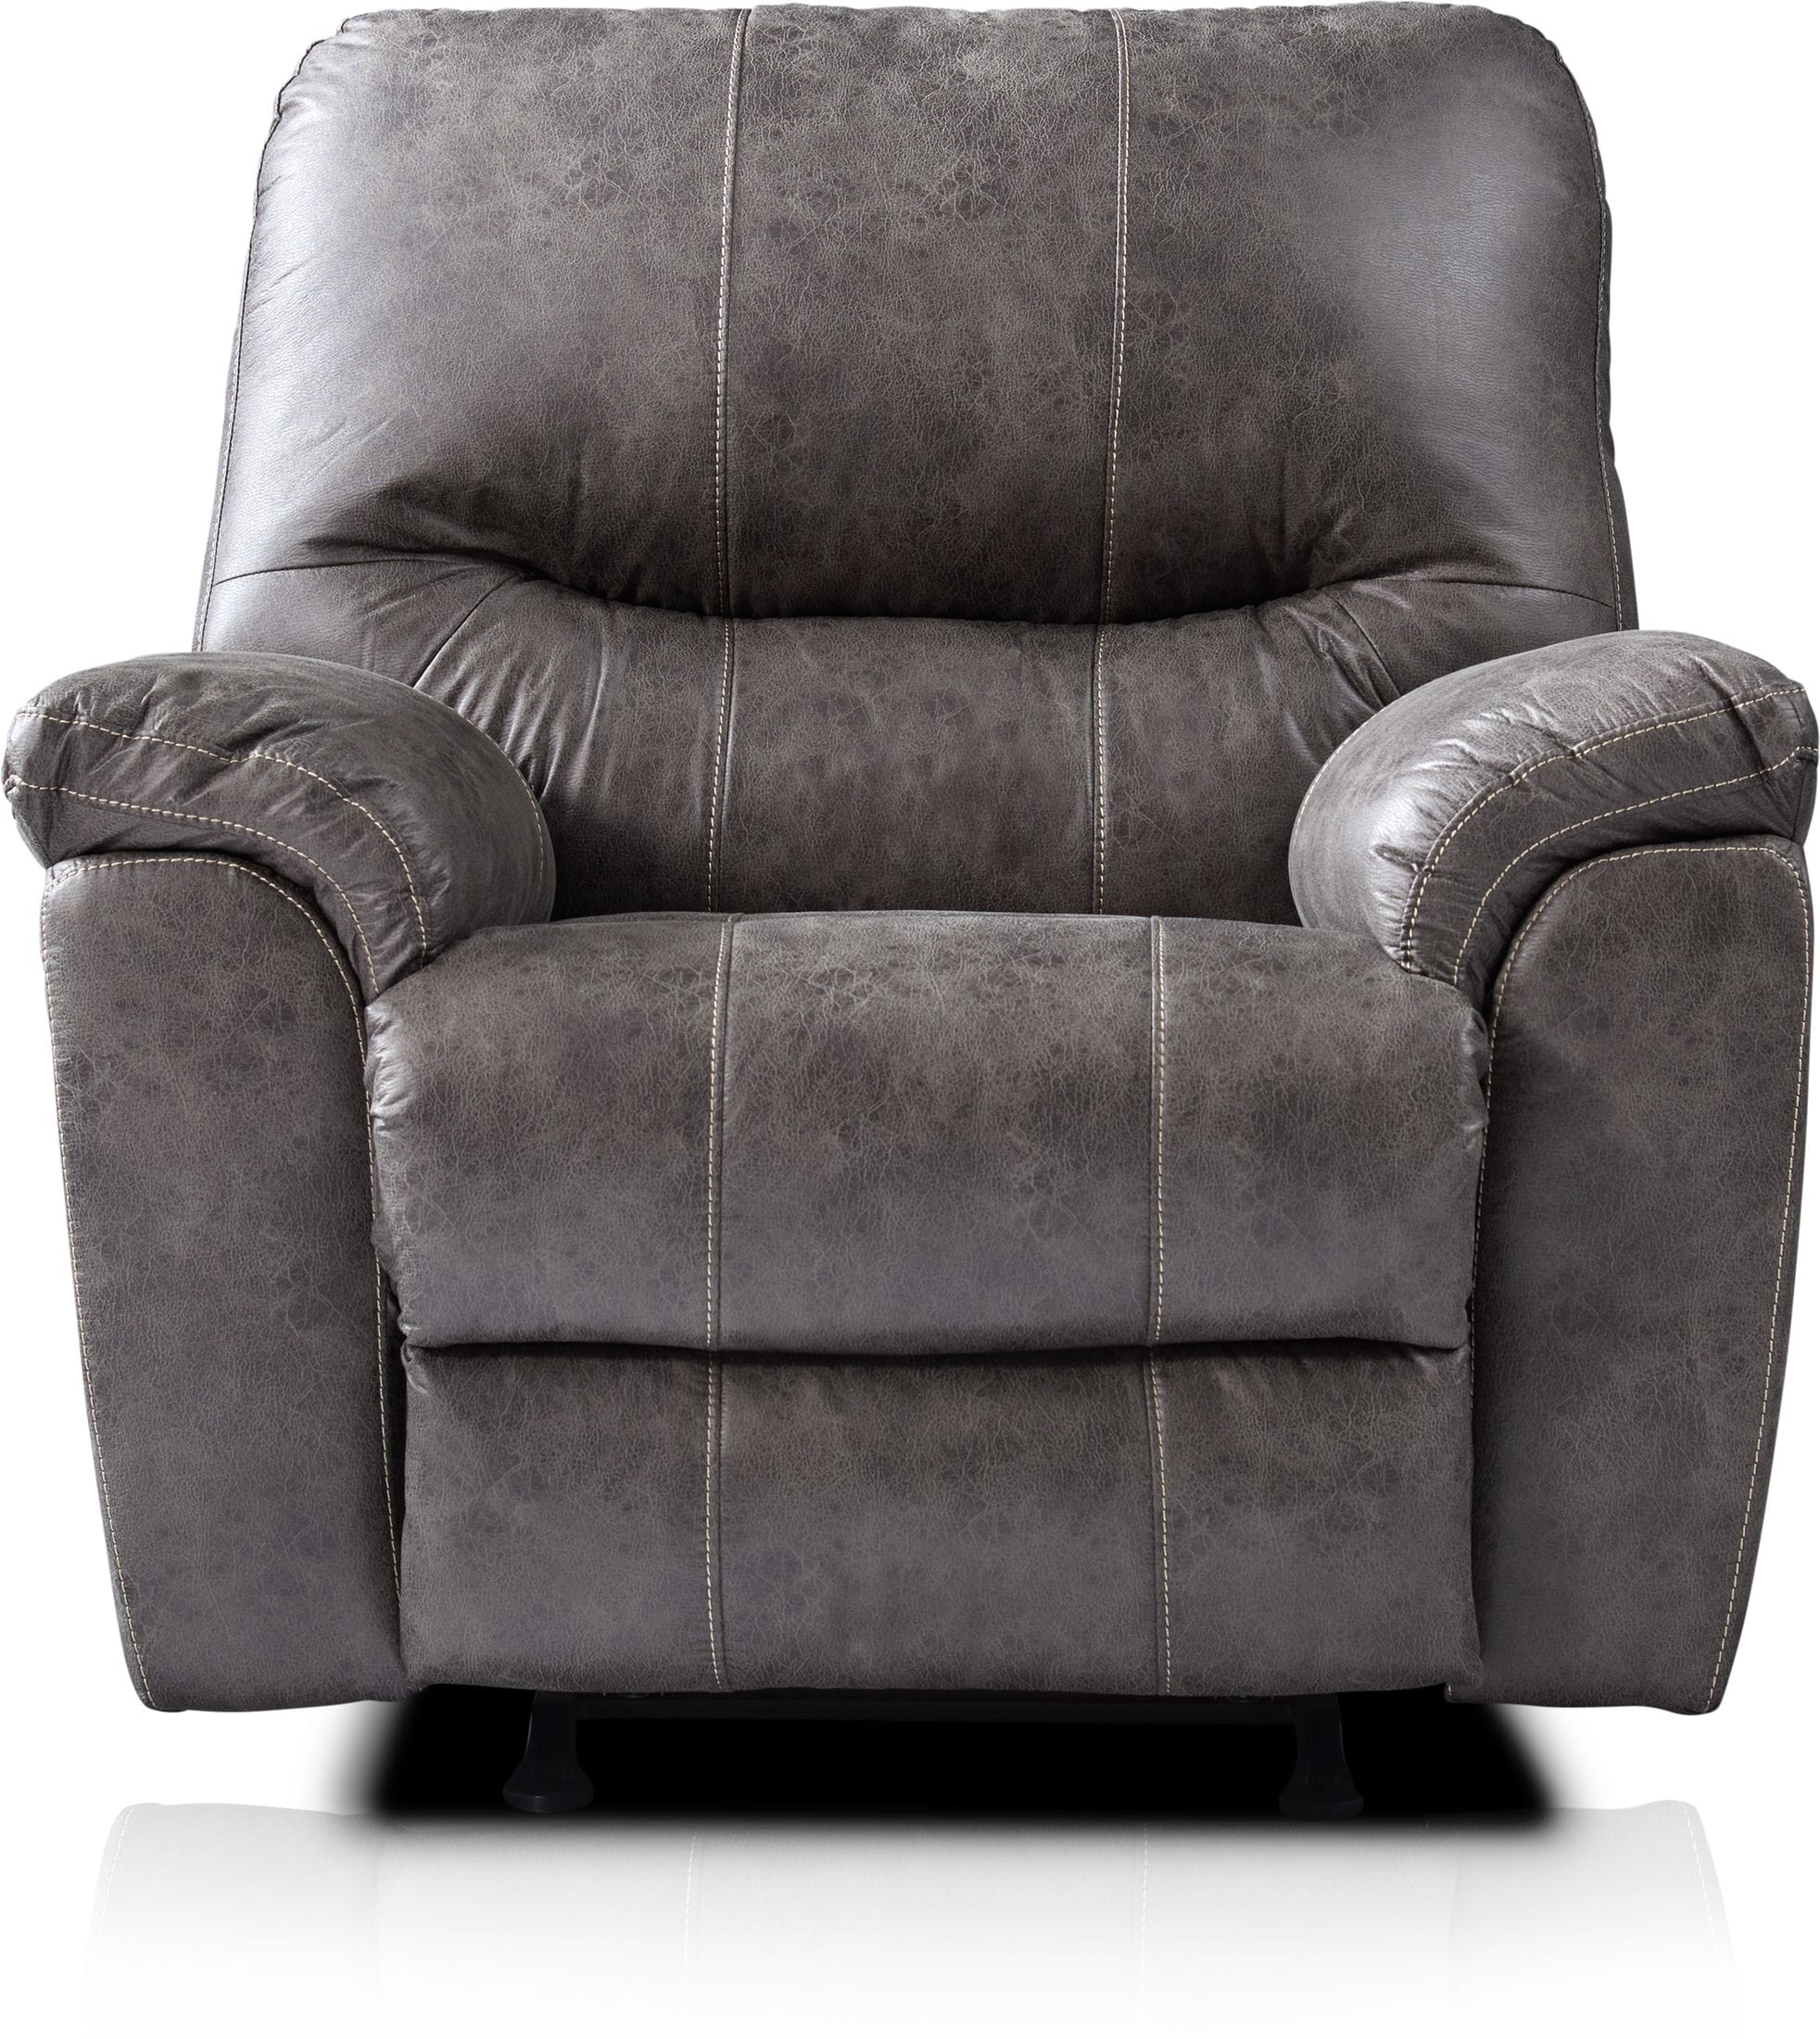 Whether you work in a retail shop or a restaurant, a doctor's office or a bank, customer service is one of your most important tasks. Bennett Manual Recliner | Value City Furniture